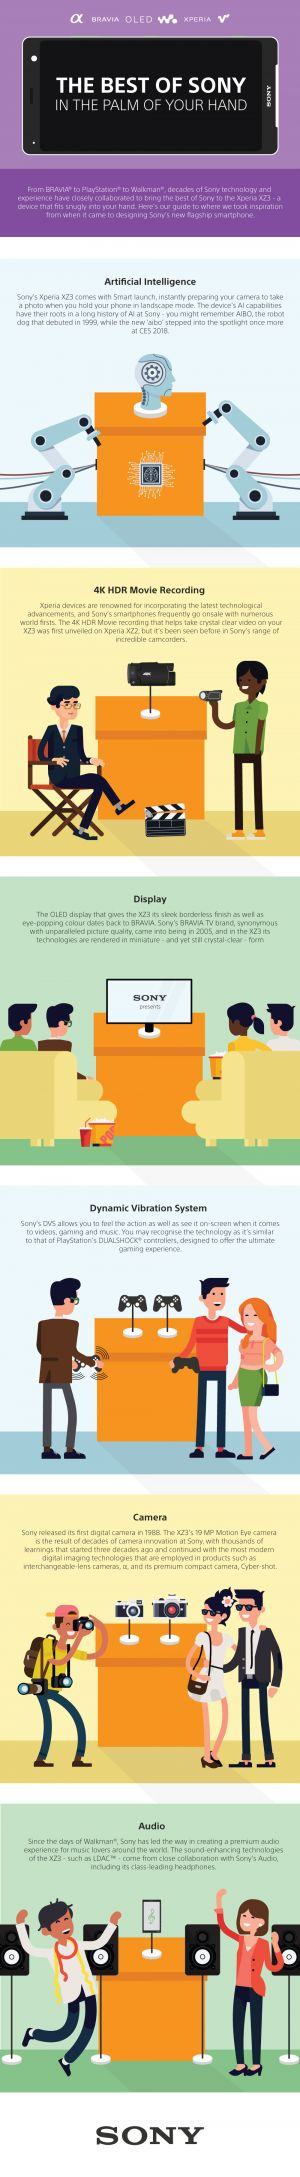 The Best of Sony: How Sony's technology innovations combined to create Xperia XZ3